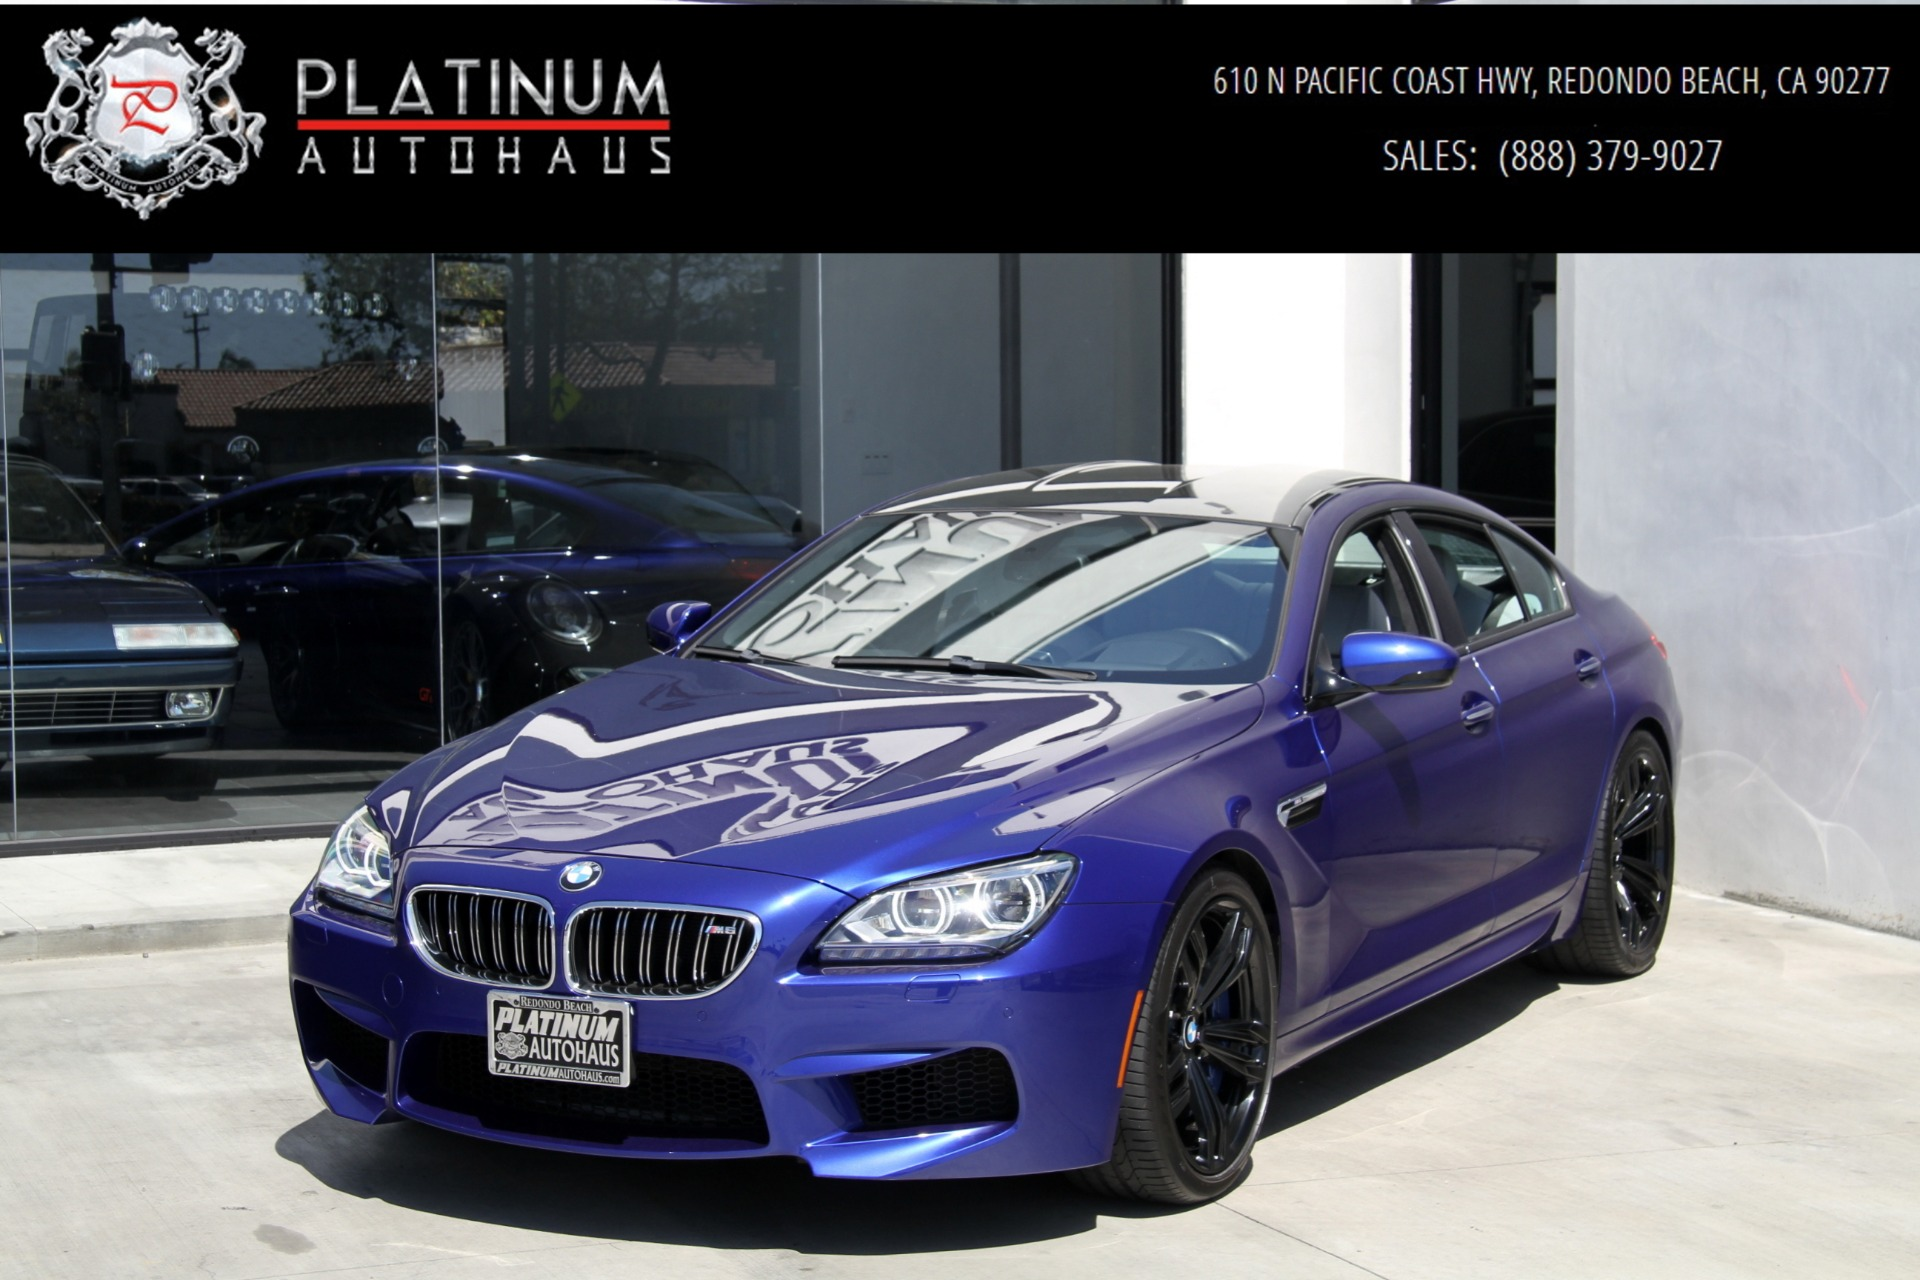 Bmw Dealer Near Me >> 2014 BMW M6 Gran Coupe ** Competition Pkg ** Stock # 6076 for sale near Redondo Beach, CA | CA ...